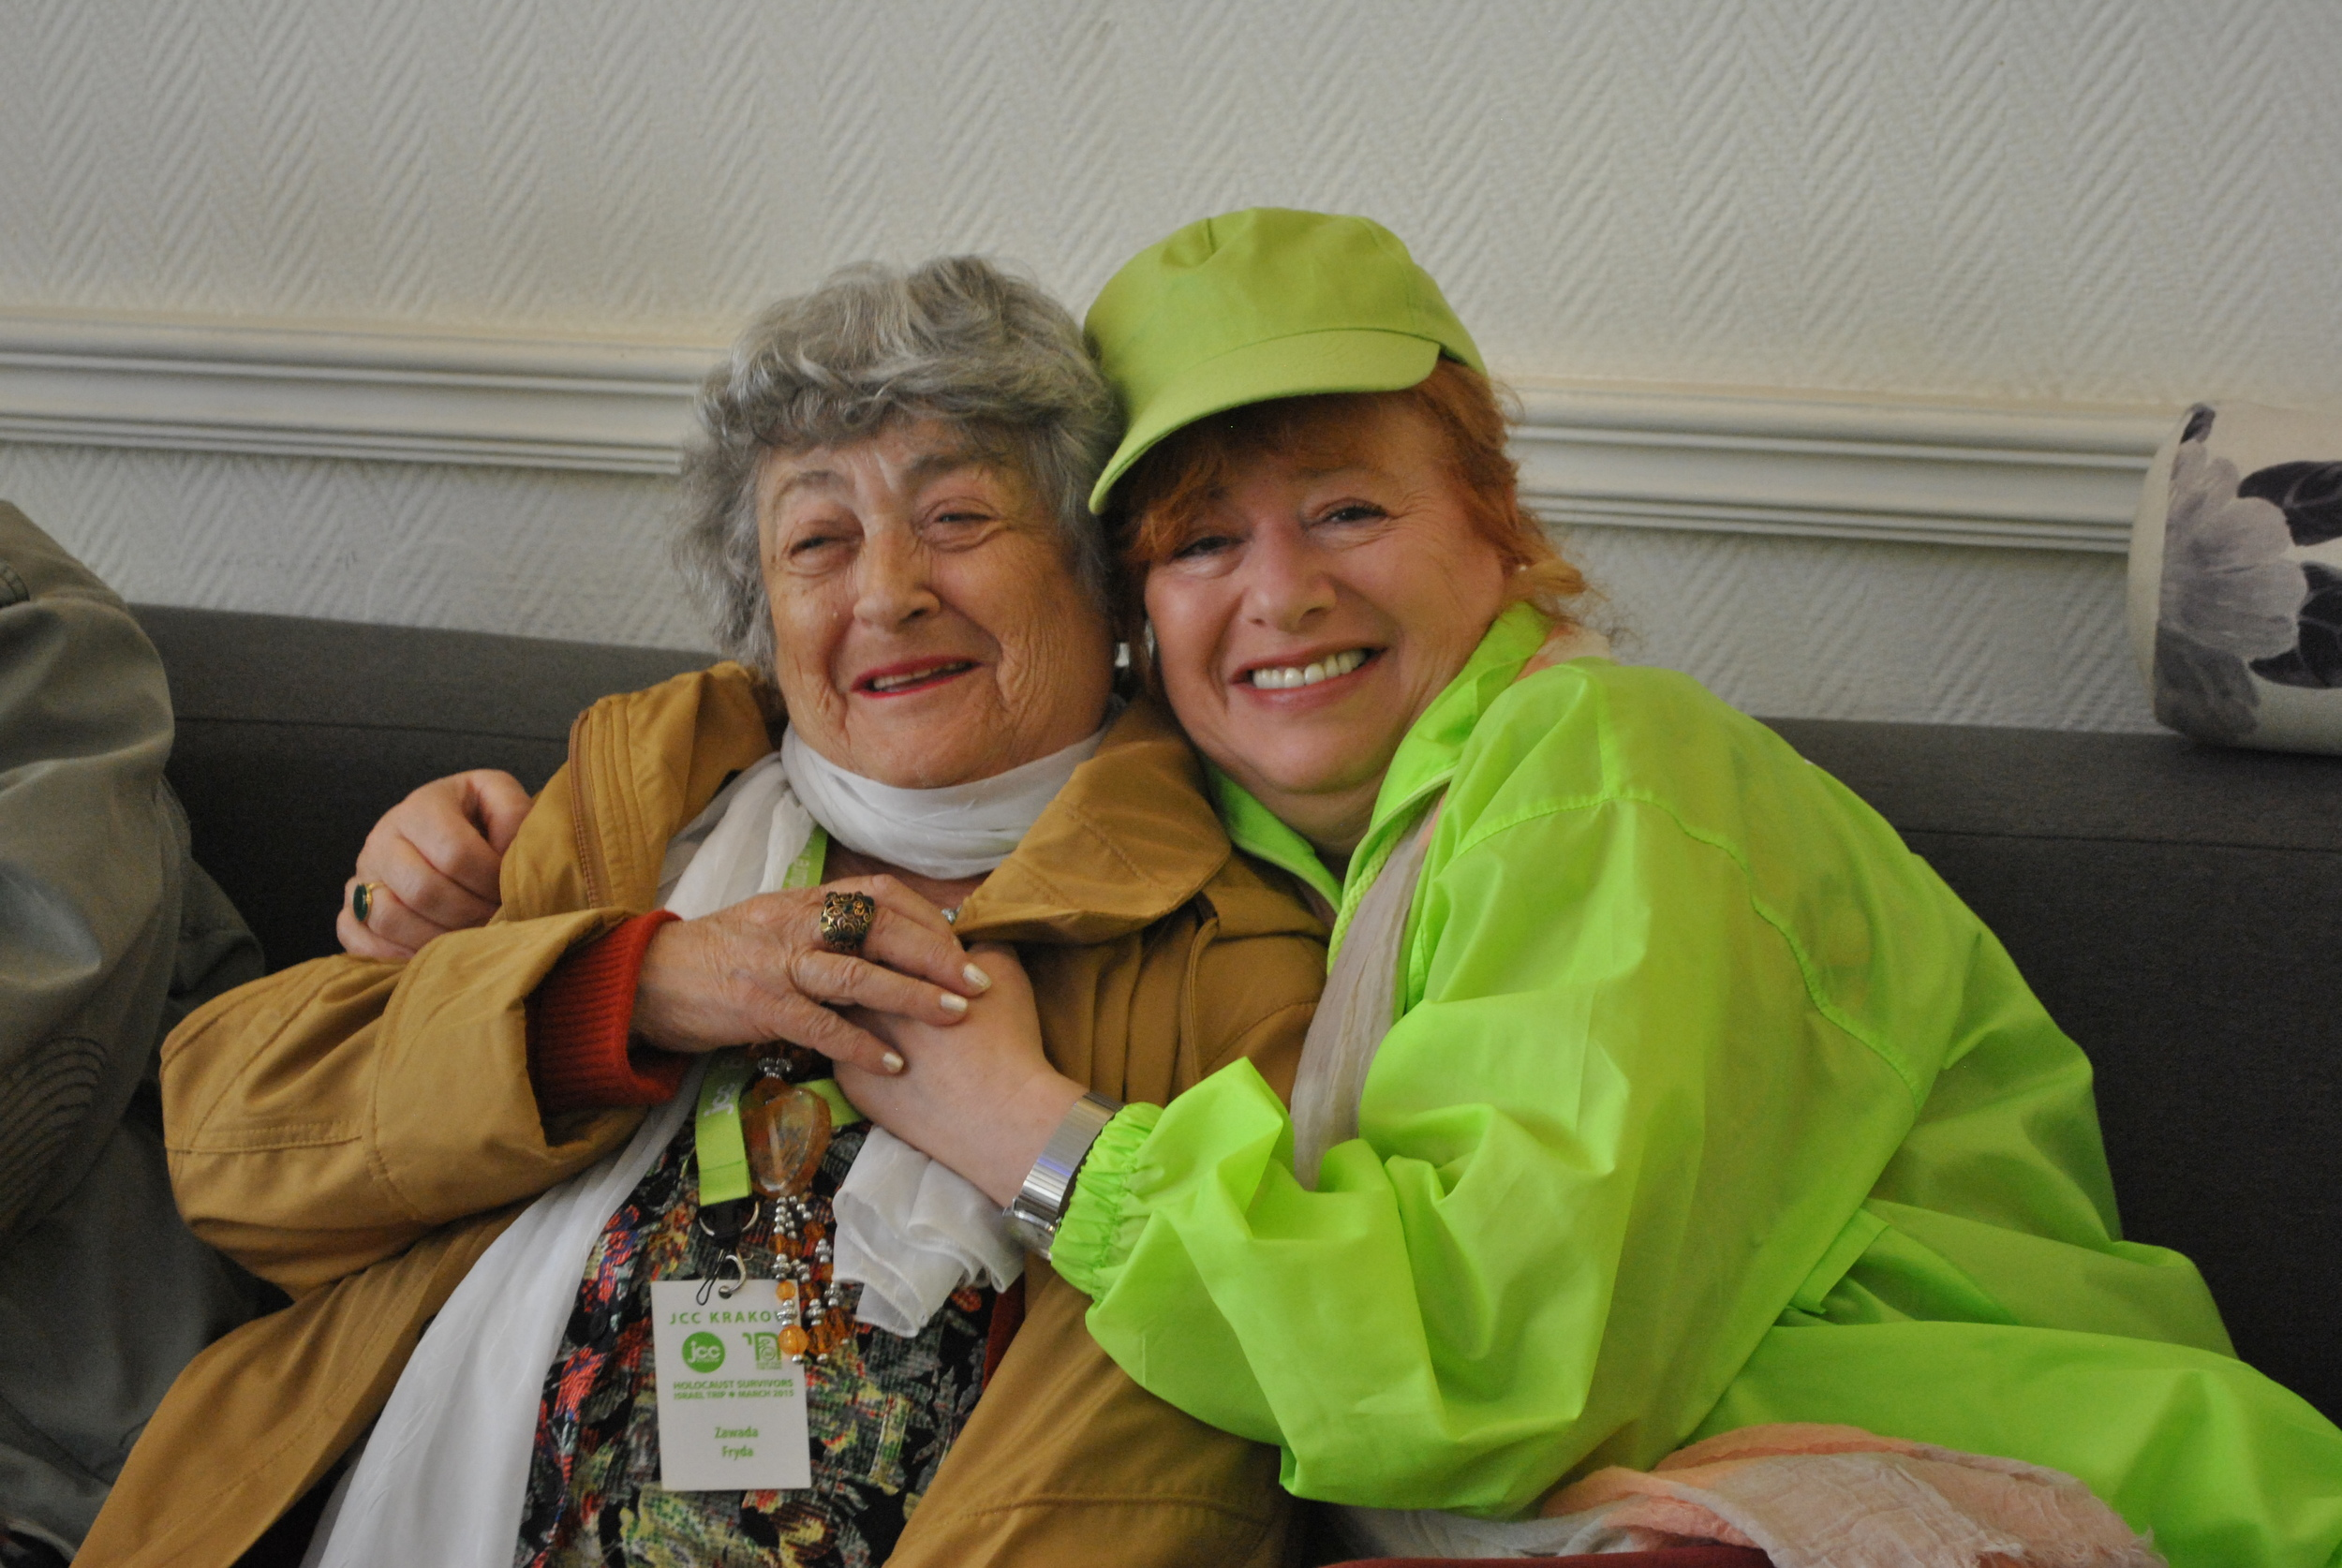 Frida and Małgosia, the JCC Krakow Senior Club Coordinator tired but happy after the week long visit.